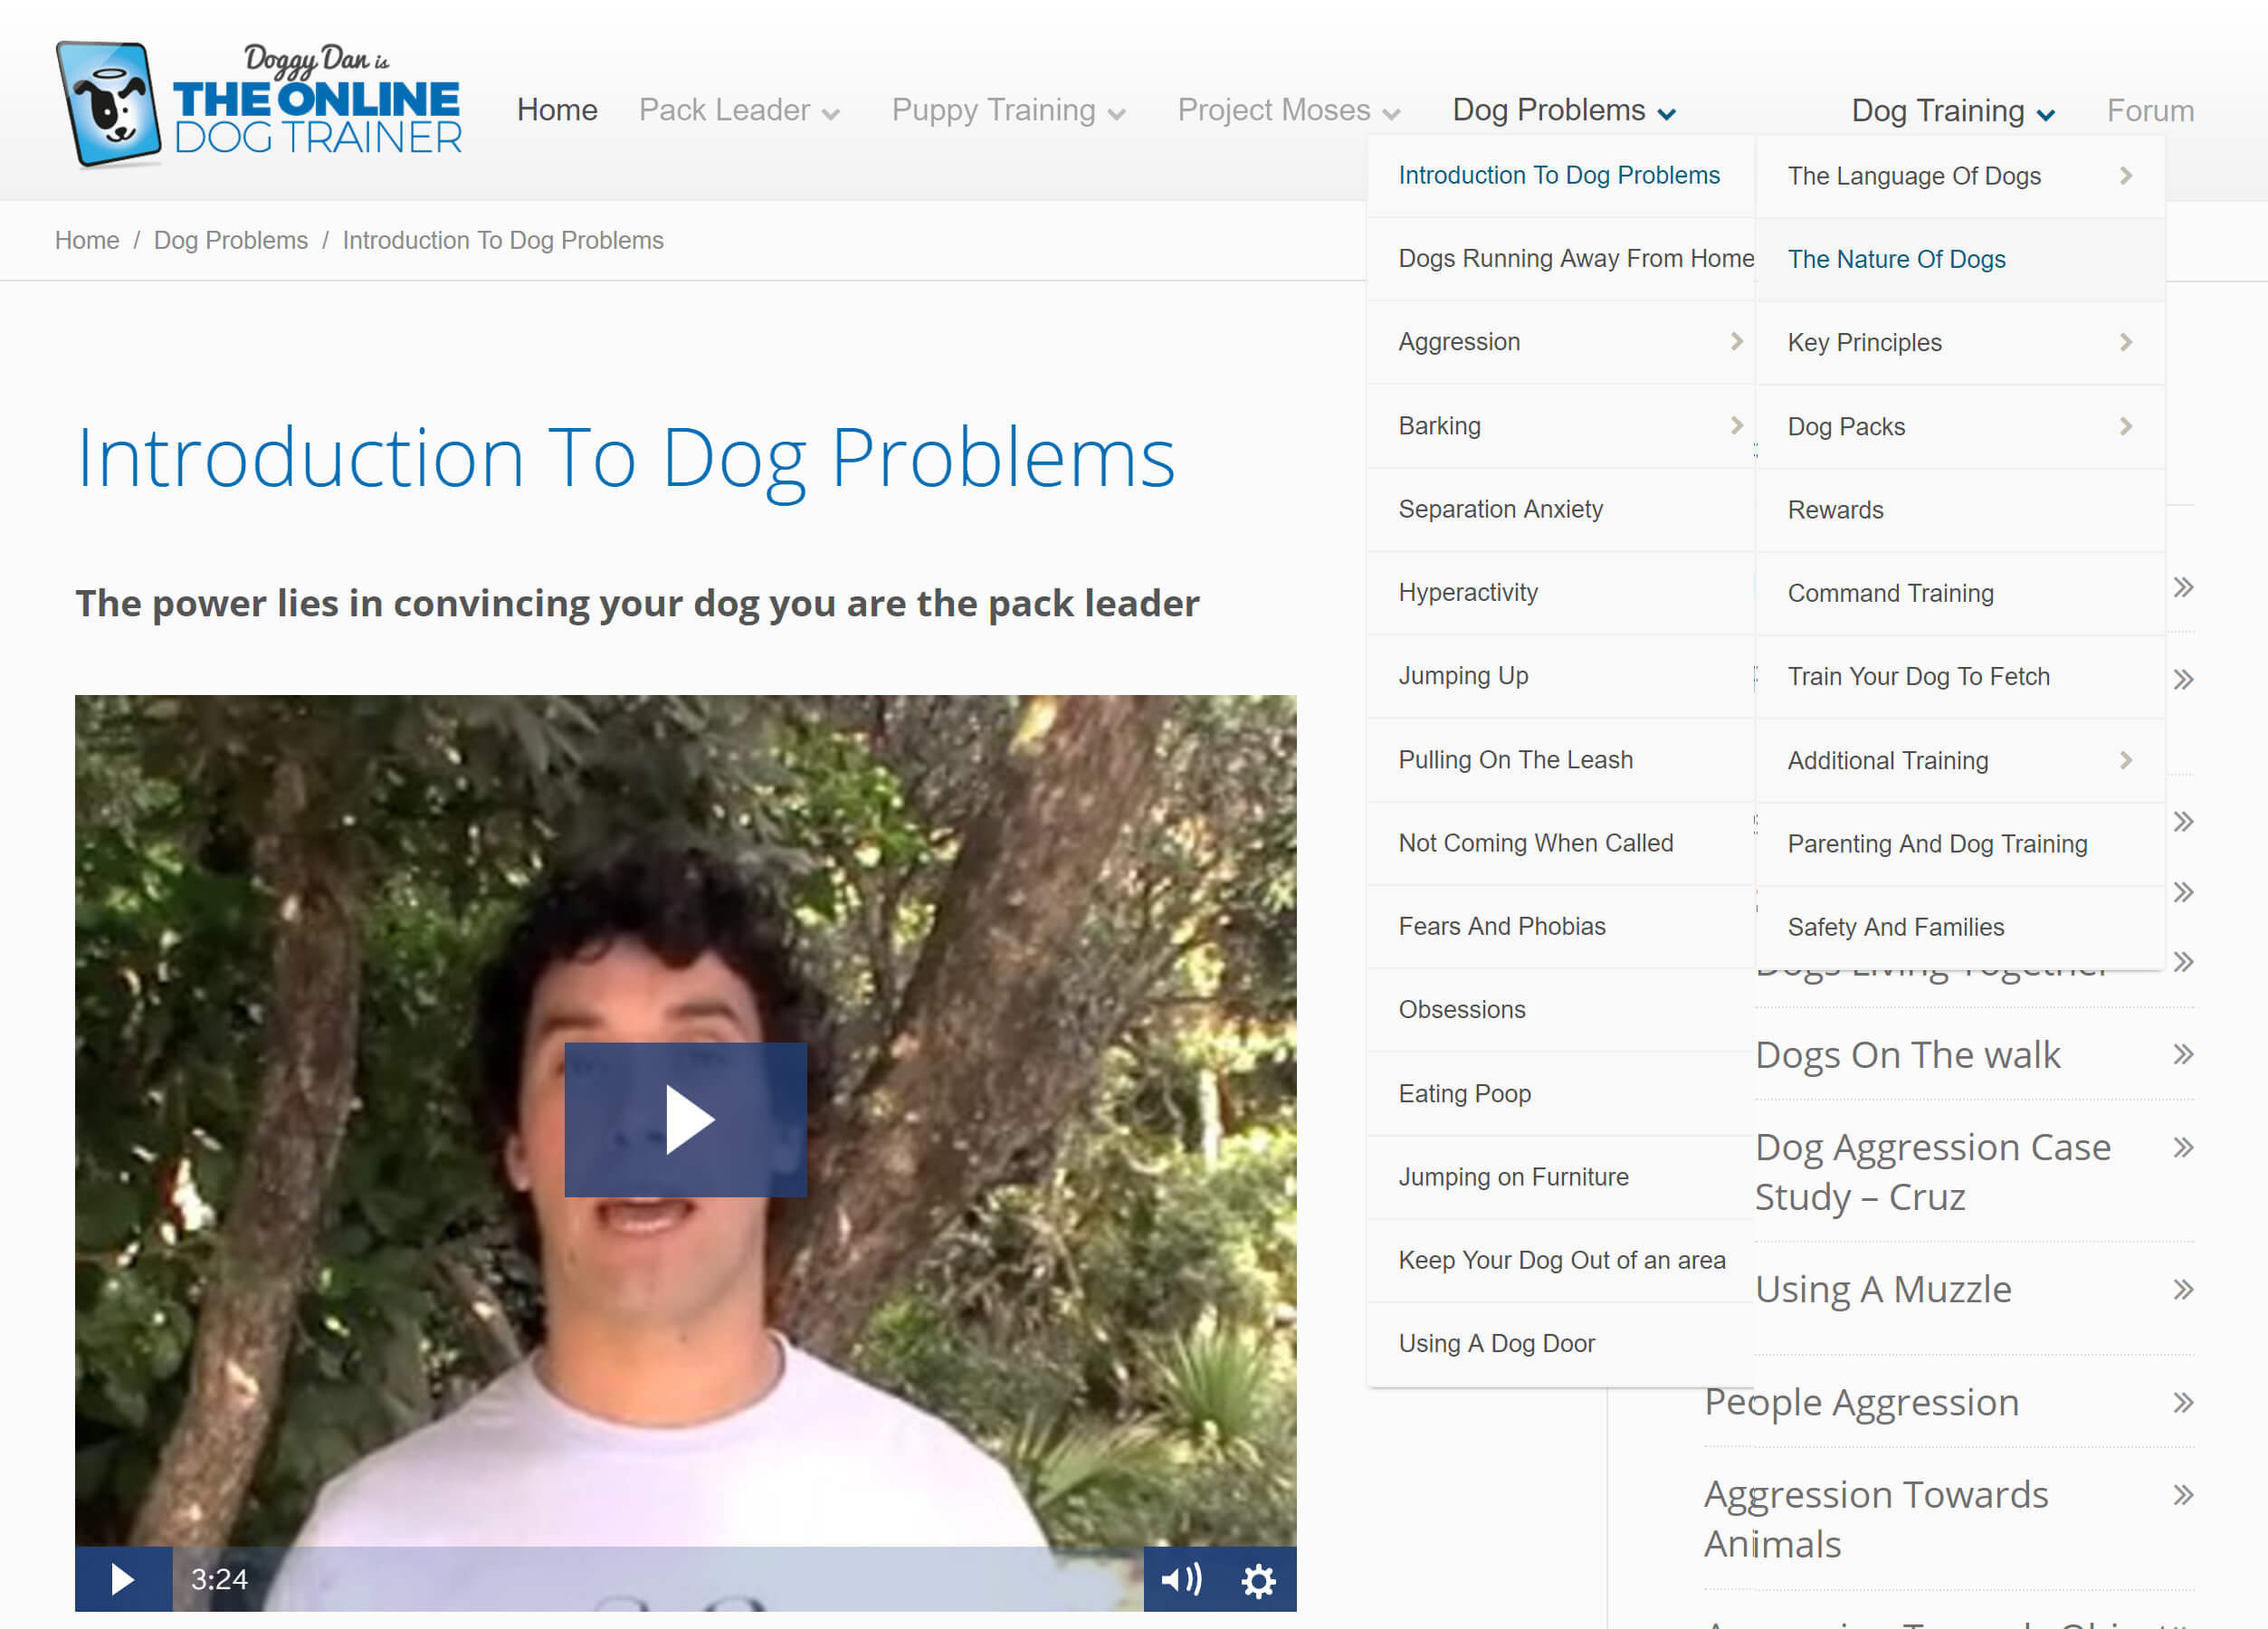 The Online Dog Trainer: Dog Problems and Dog Training Section